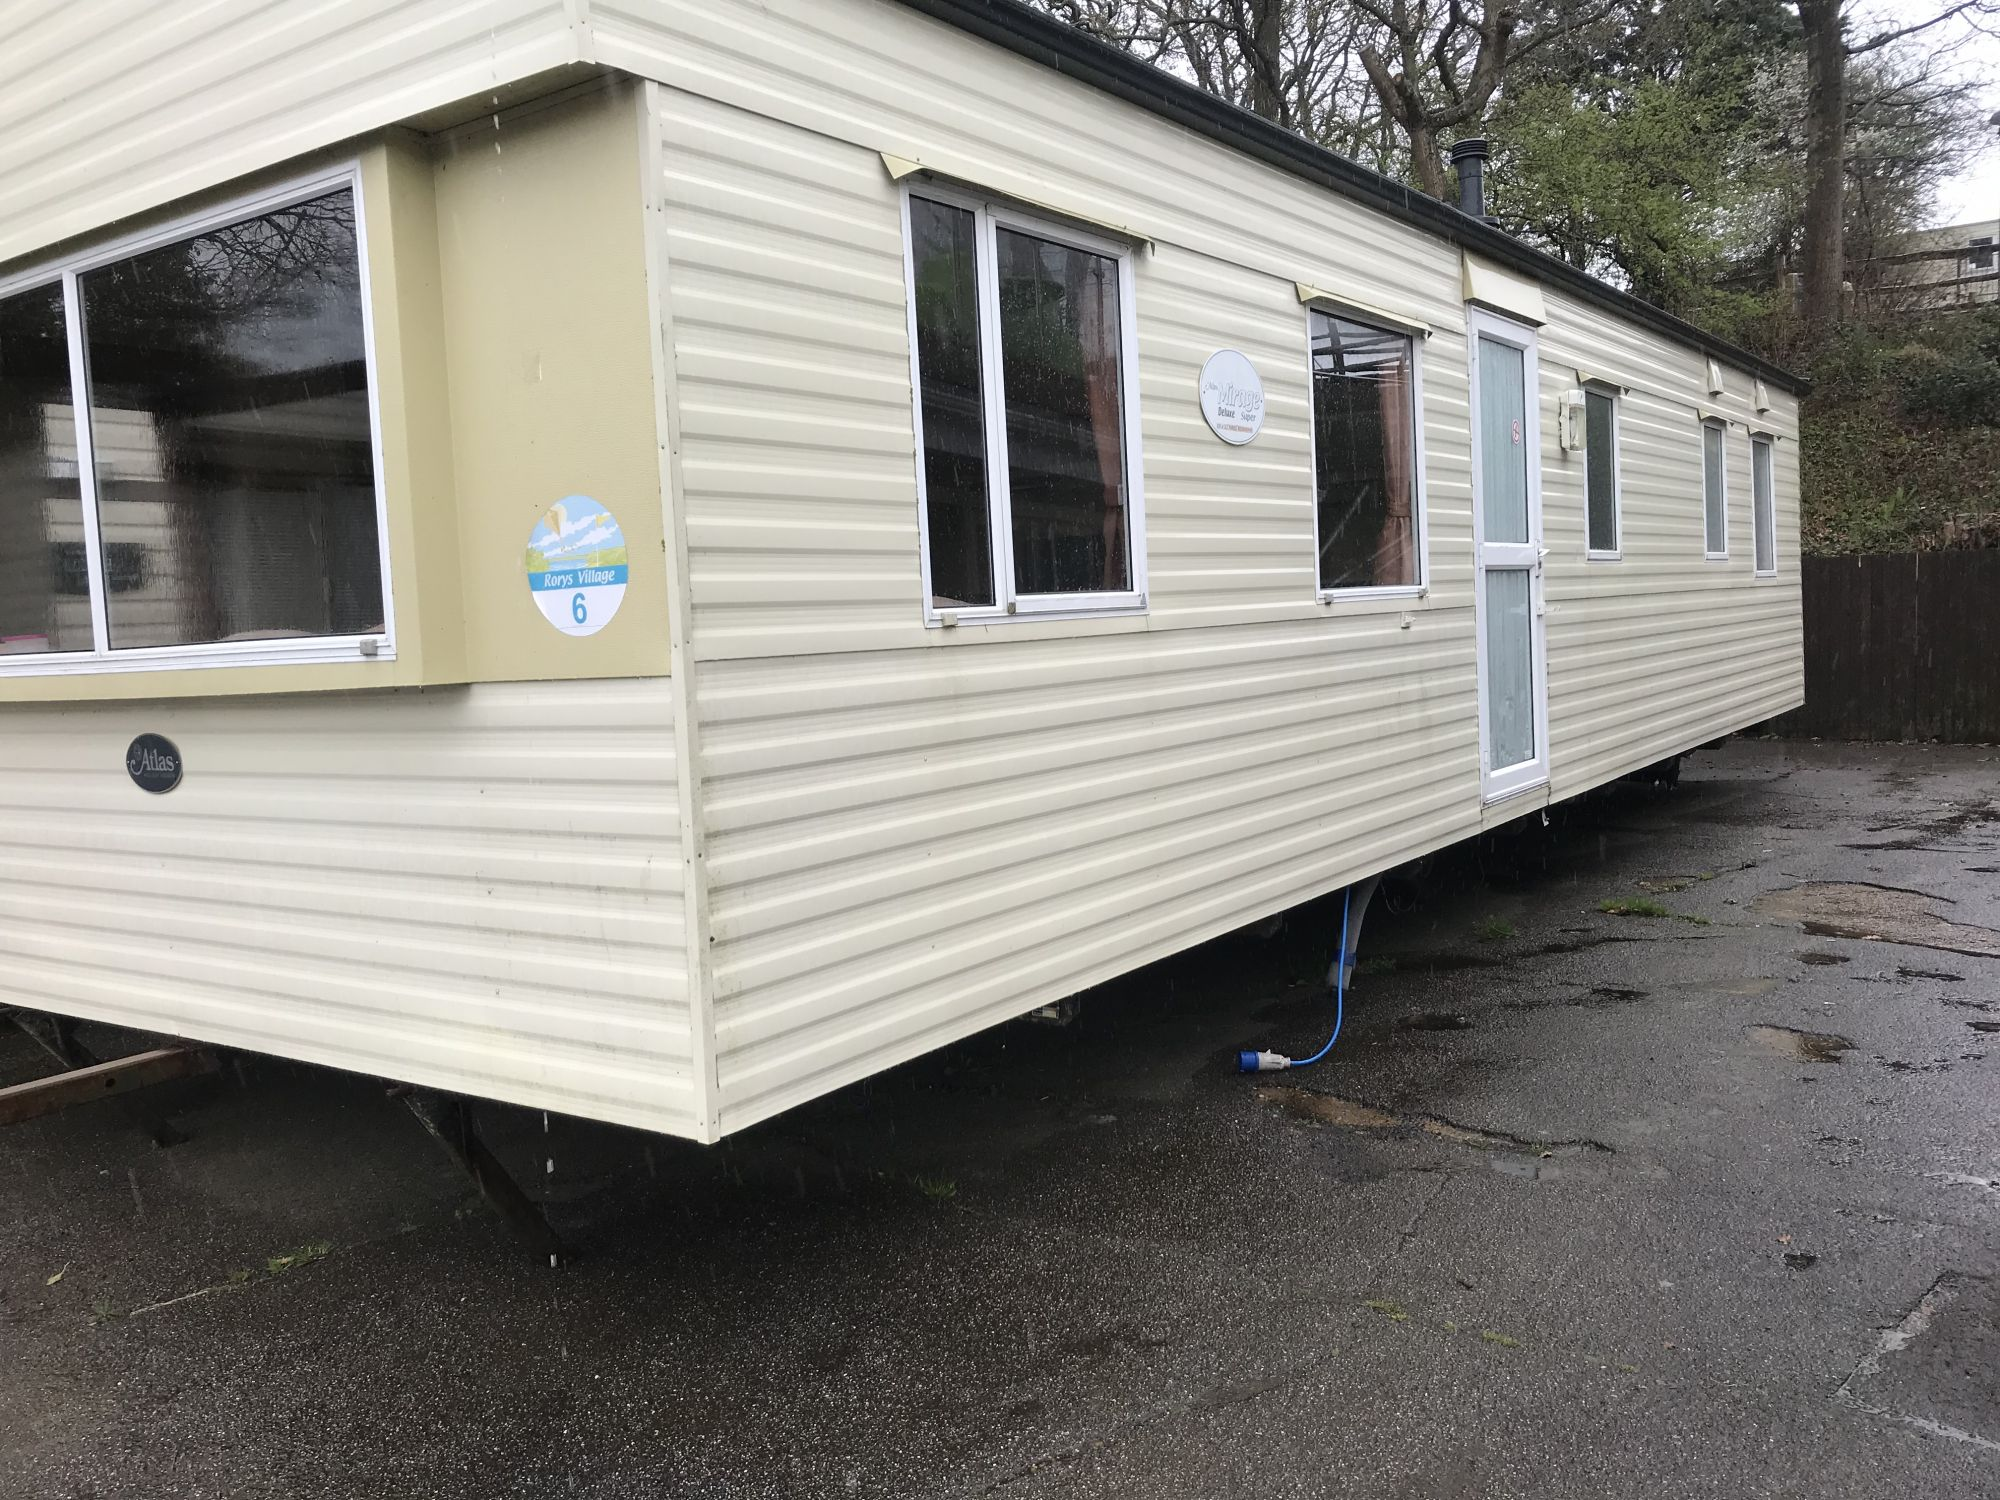 2008 Atlas Mirage 37/12-3 bed